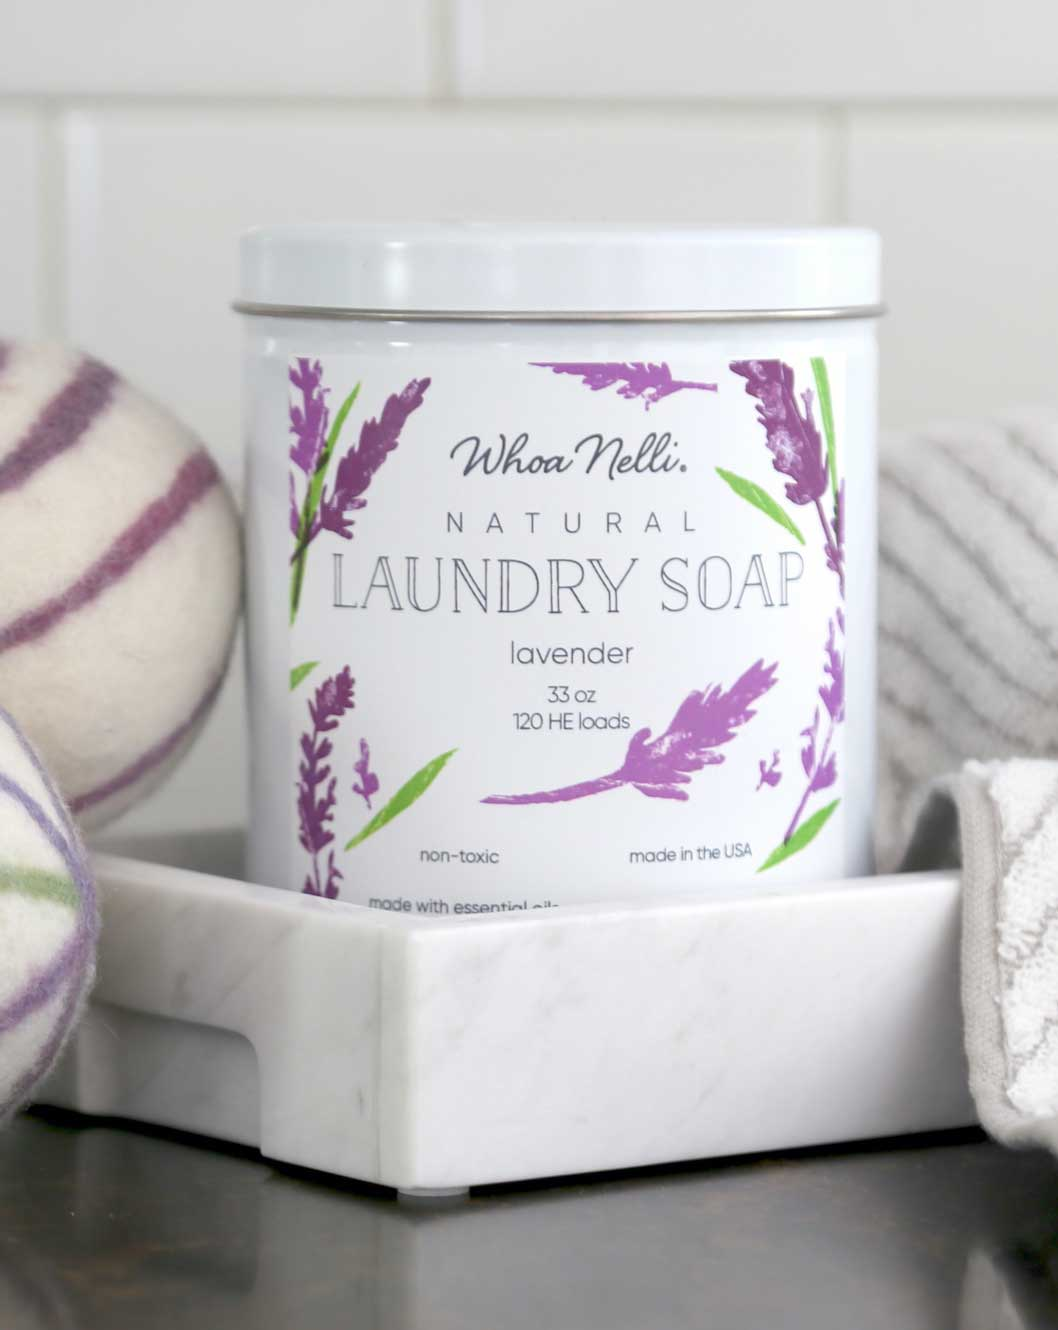 Whoa Nelli natural laundry soap with wool dryer balls